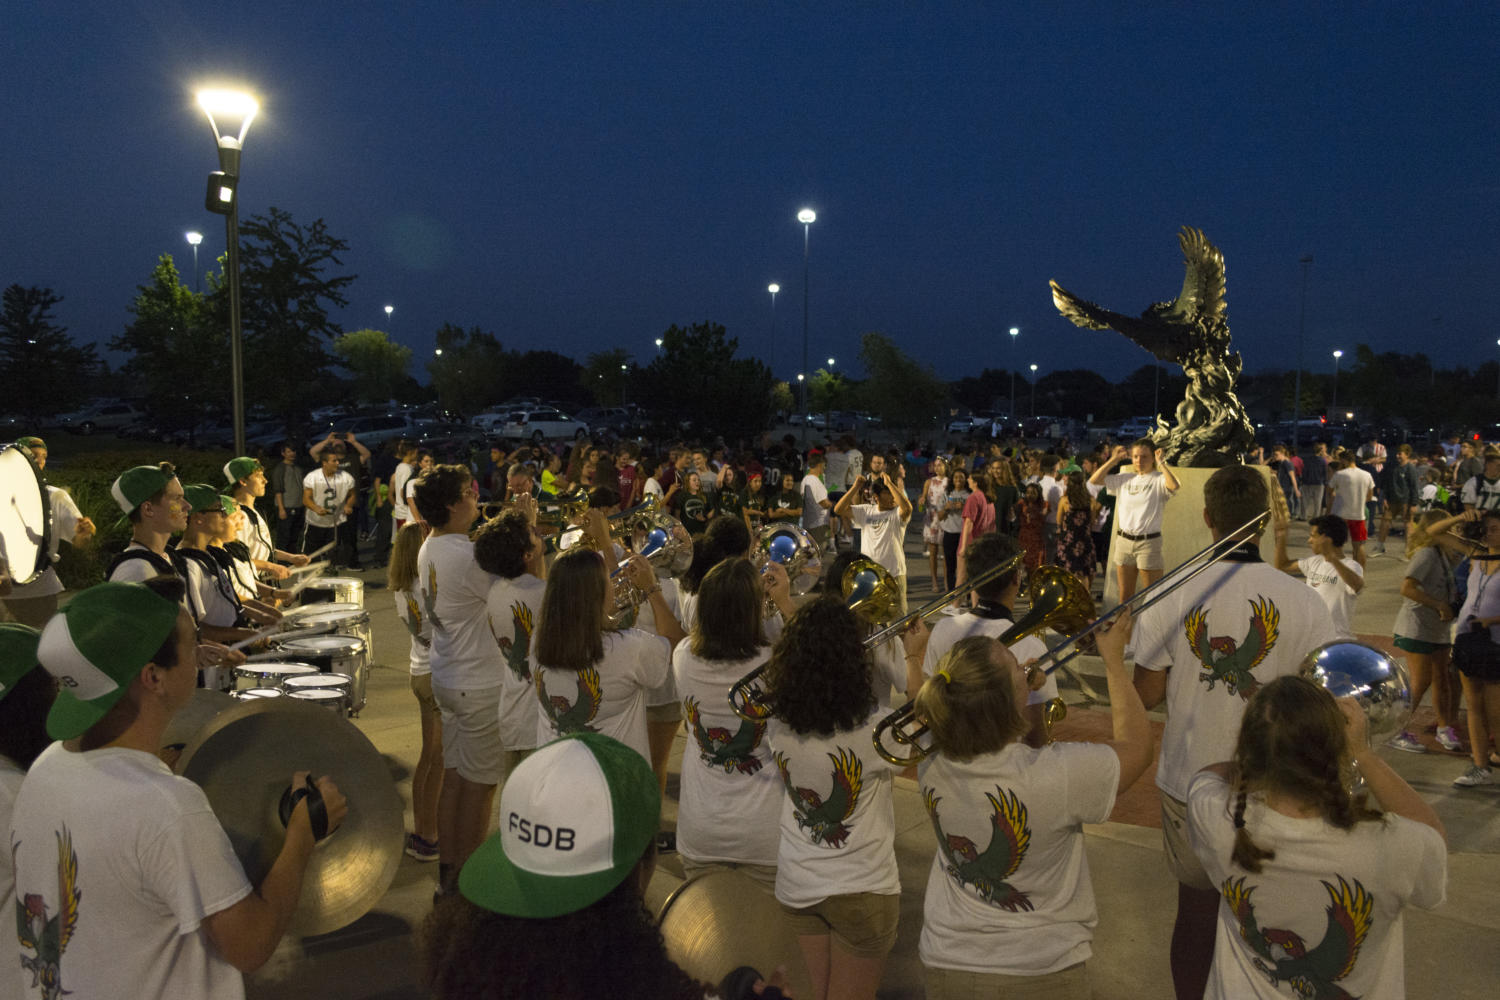 The Free State marching band performs at the bonfire. The band performance followed a show by the student band